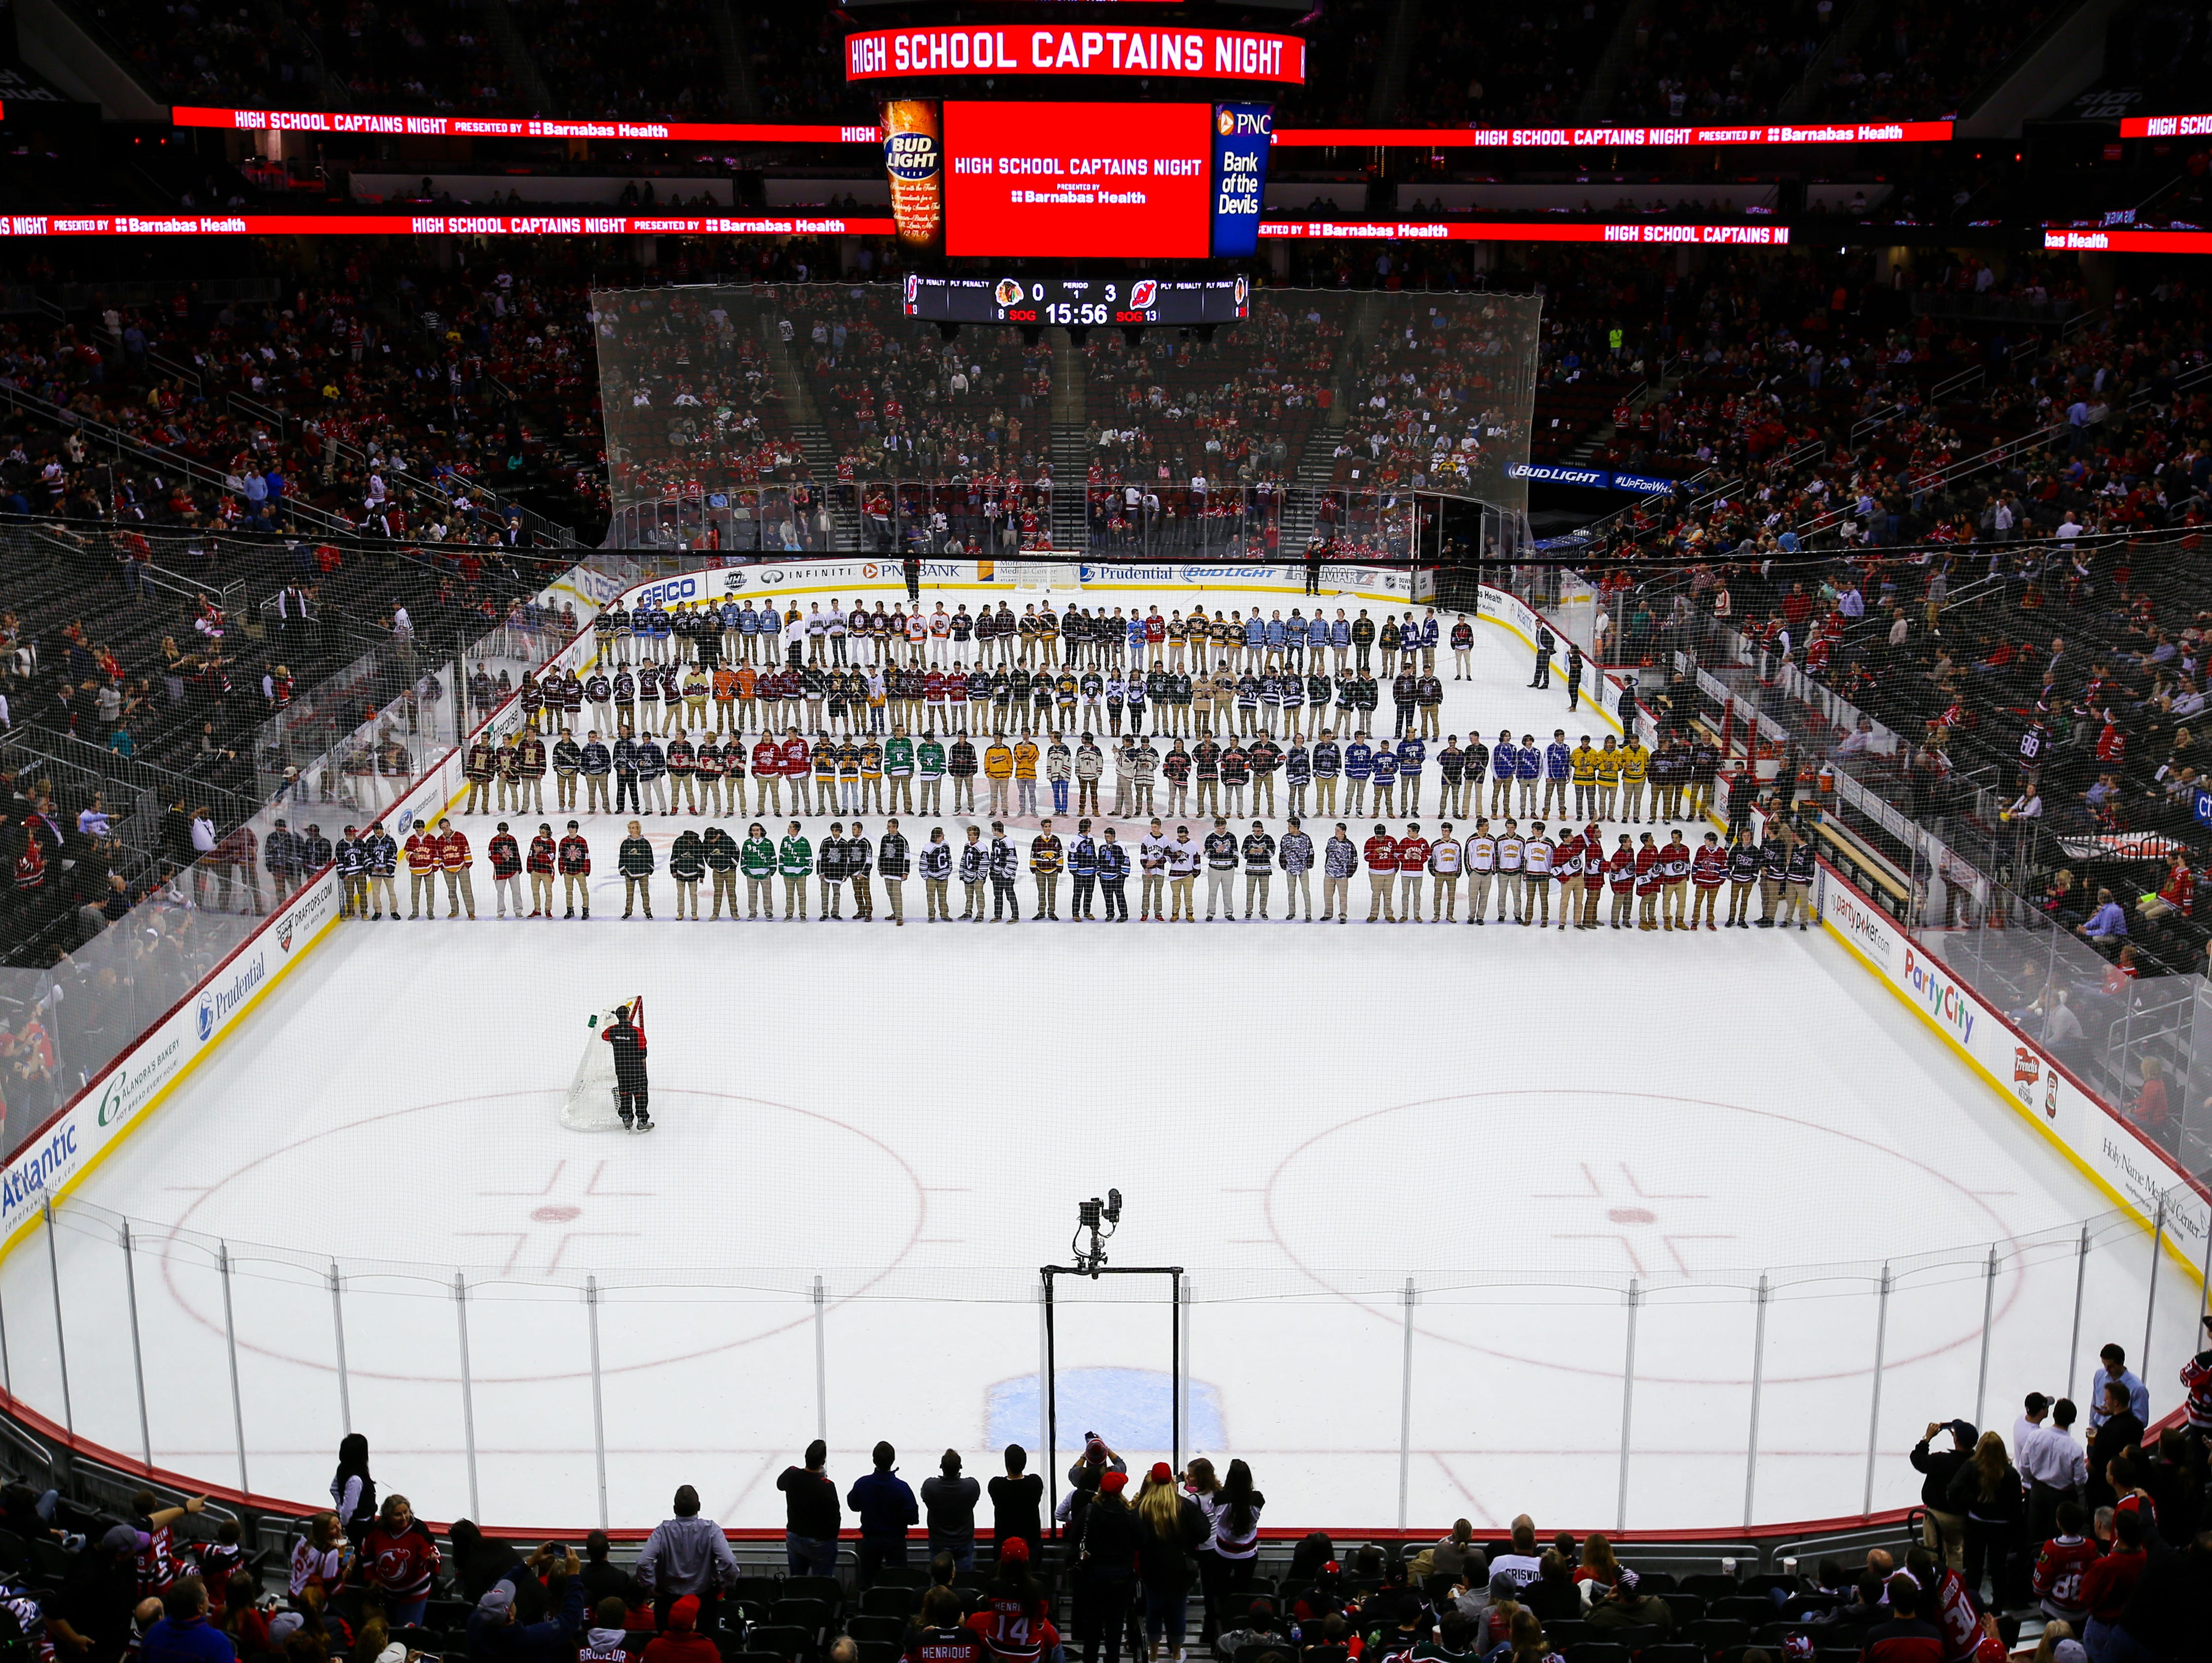 New Jersey High School Hockey captains descended upon the Prudential Center on Nov. 6.